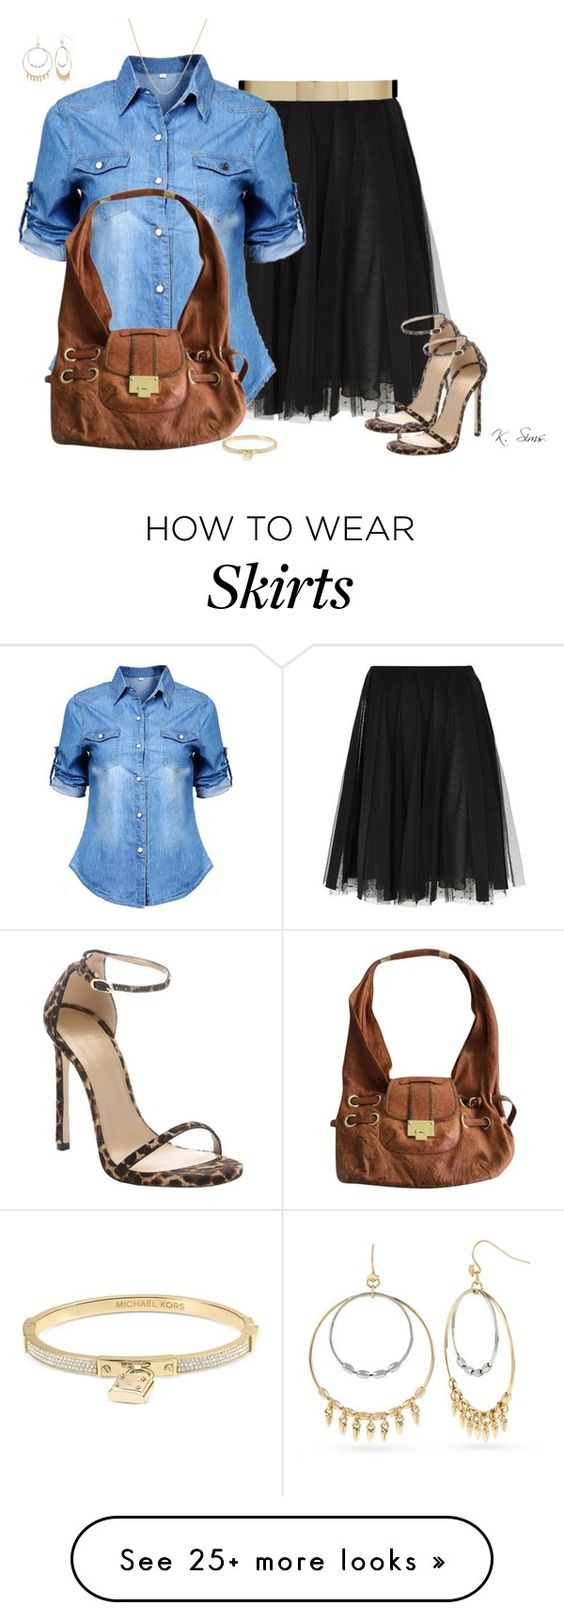 fashionable combinations with a spring tulle skirt 4 - fashionable-combinations-with-a-spring-tulle-skirt-4